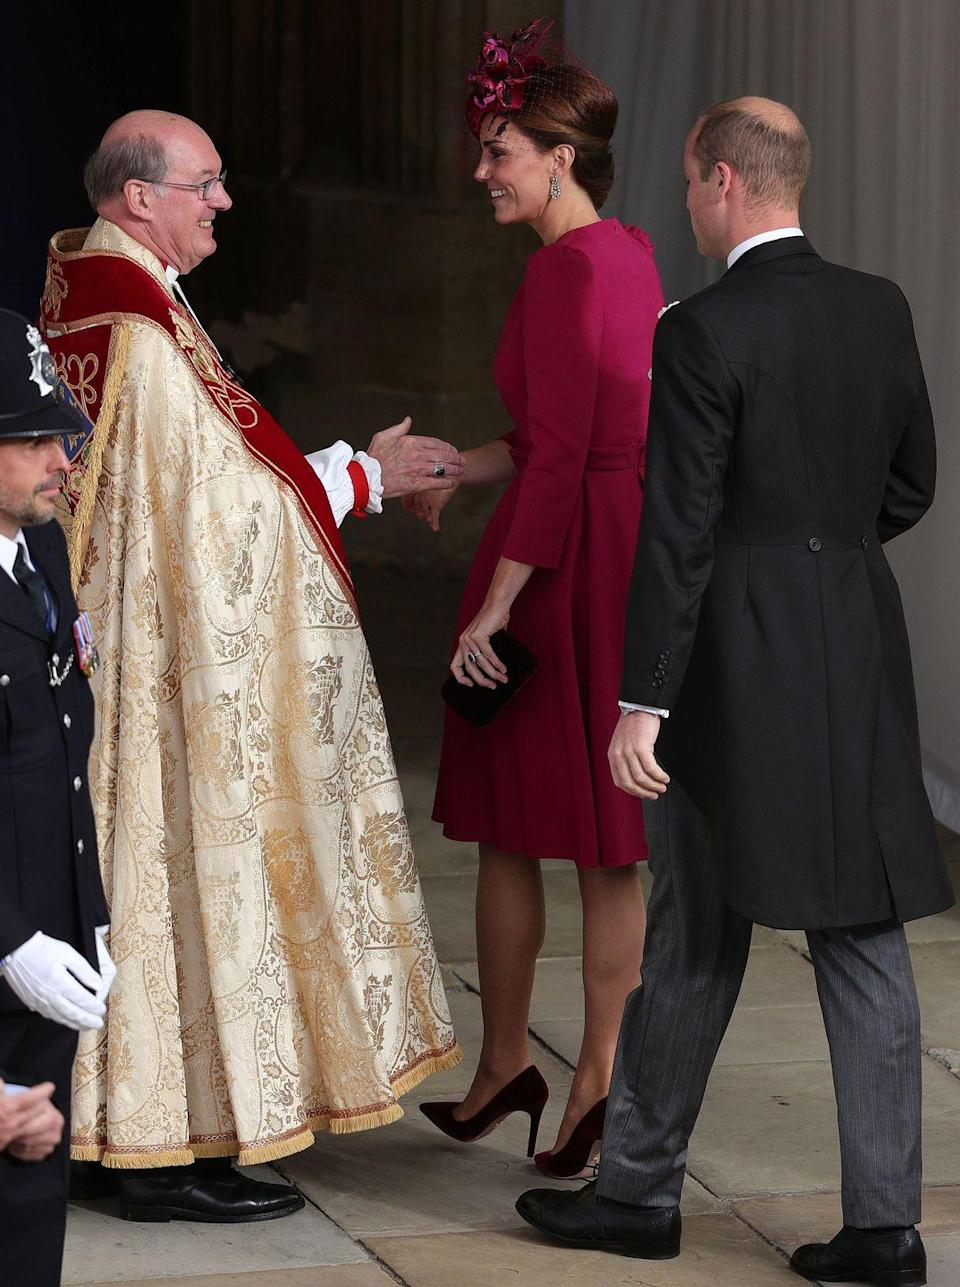 """<p>Kate Middleton wore <a href=""""https://www.townandcountrymag.com/society/tradition/a23455715/kate-middleton-princess-eugenie-royal-wedding-outfit/"""" rel=""""nofollow noopener"""" target=""""_blank"""" data-ylk=""""slk:a stunning pink dress"""" class=""""link rapid-noclick-resp"""">a stunning pink dress</a> by Alexander McQueen while attending Princess Eugenie and Jack Brooksbank's wedding. She accessorized the look with a hat by Philip Treacy. </p>"""